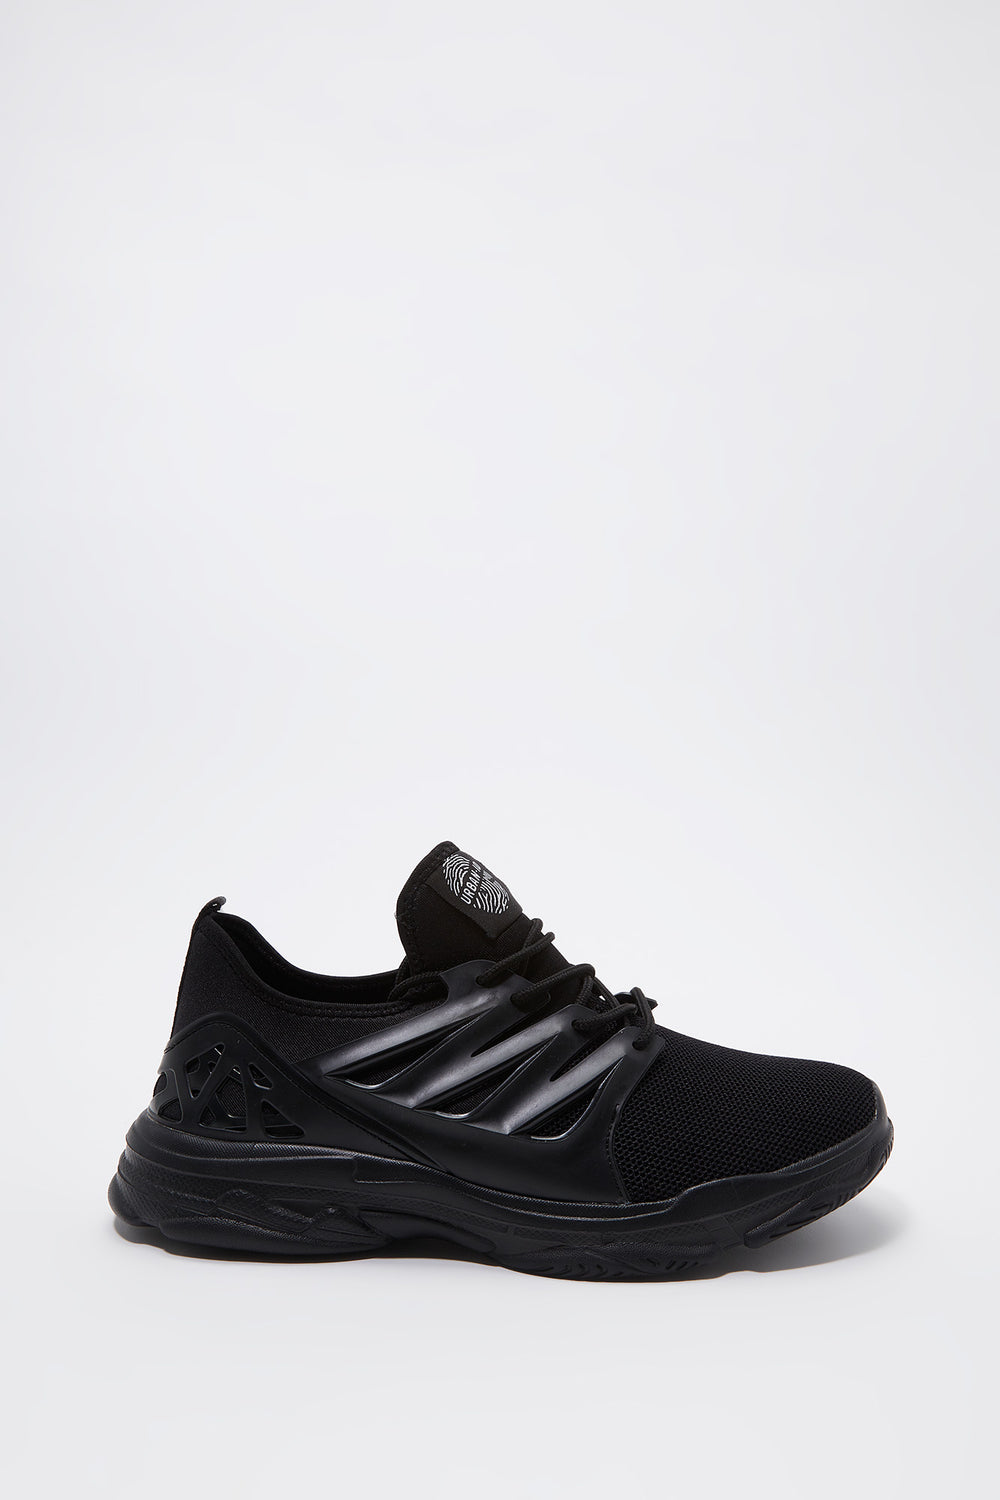 Knit Caged Athletic Sneaker Black